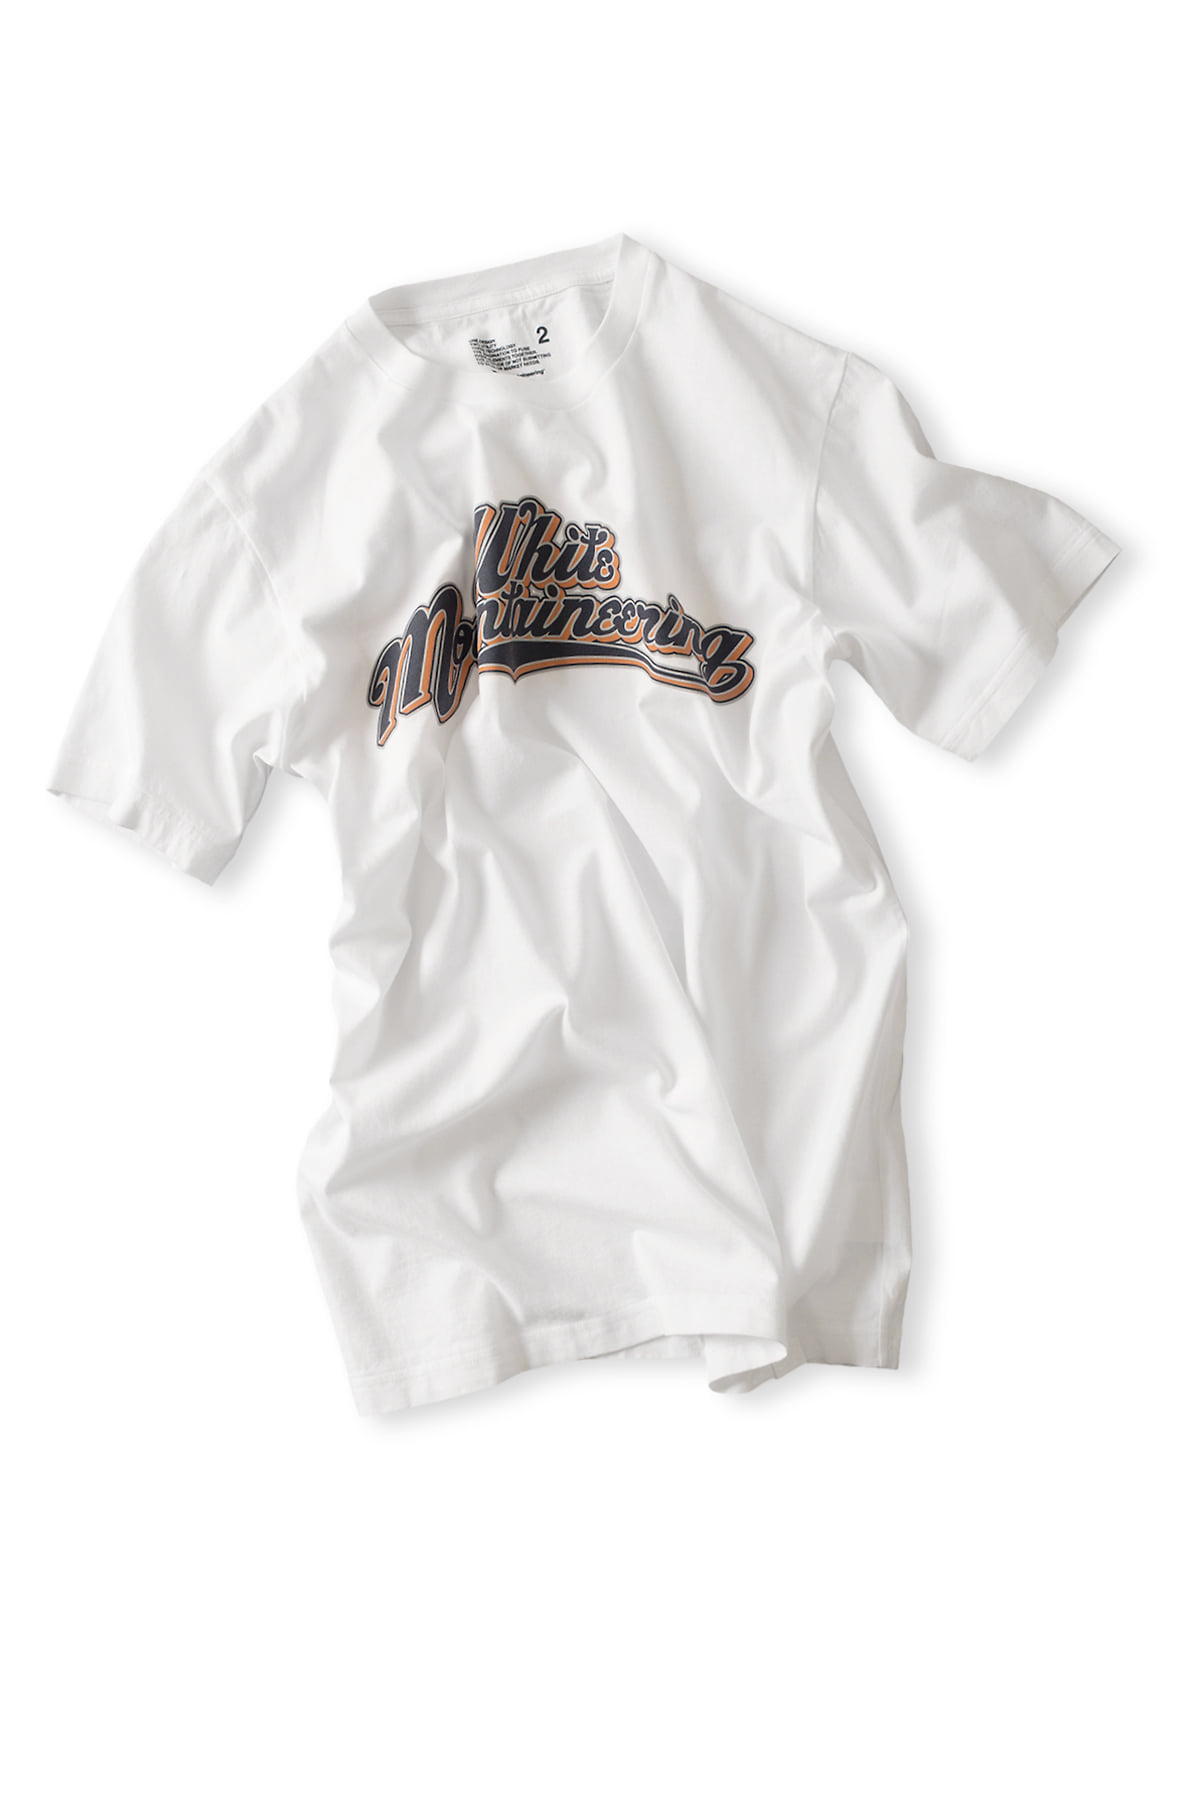 WHITE MOUNTAINEERING : Printed T-Shirt Team W.M (White)